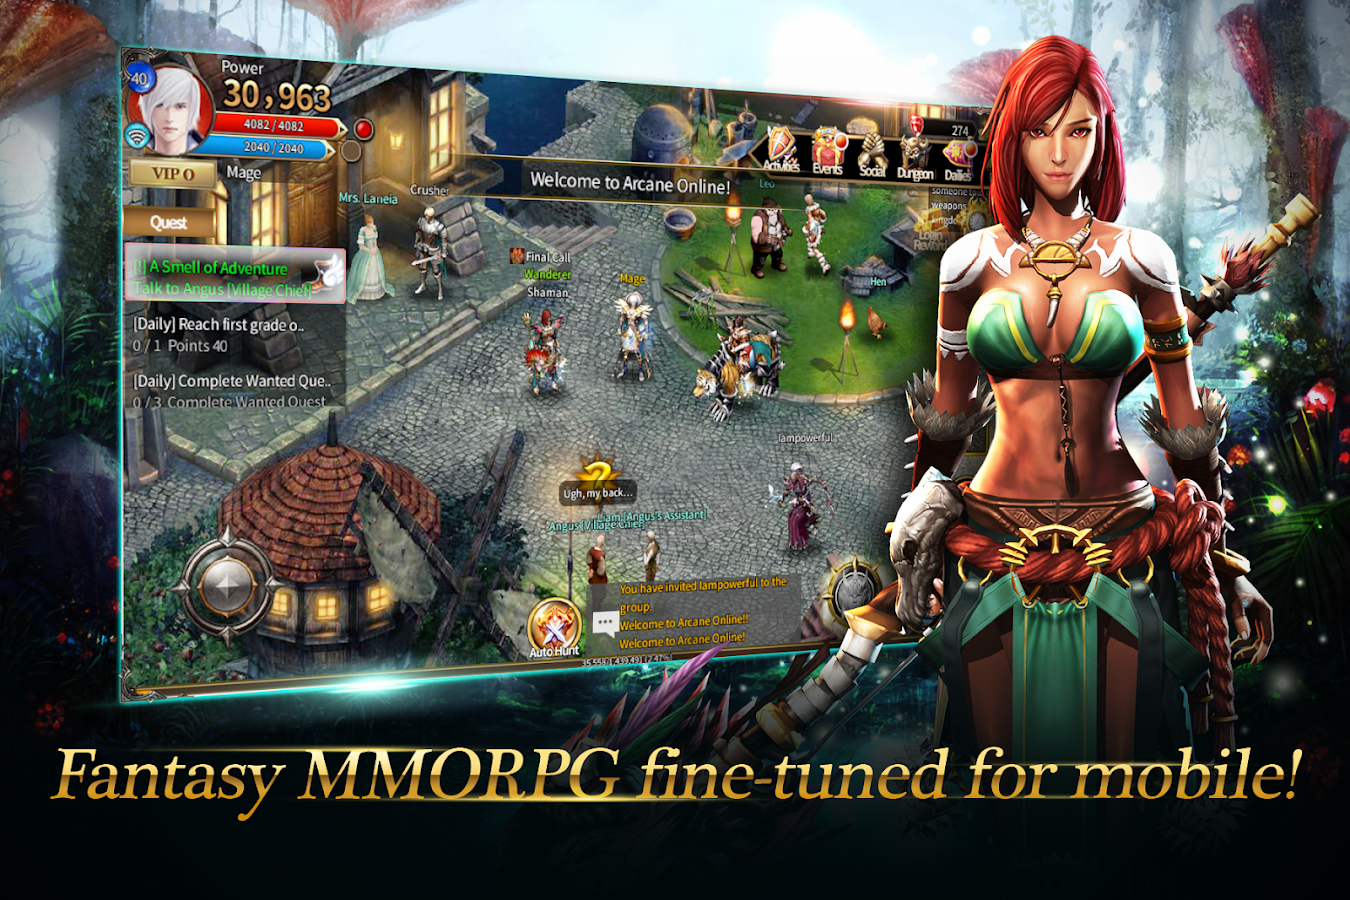 Phone Mmorpg For Android Phones arcane online mmorpg android apps on google play screenshot